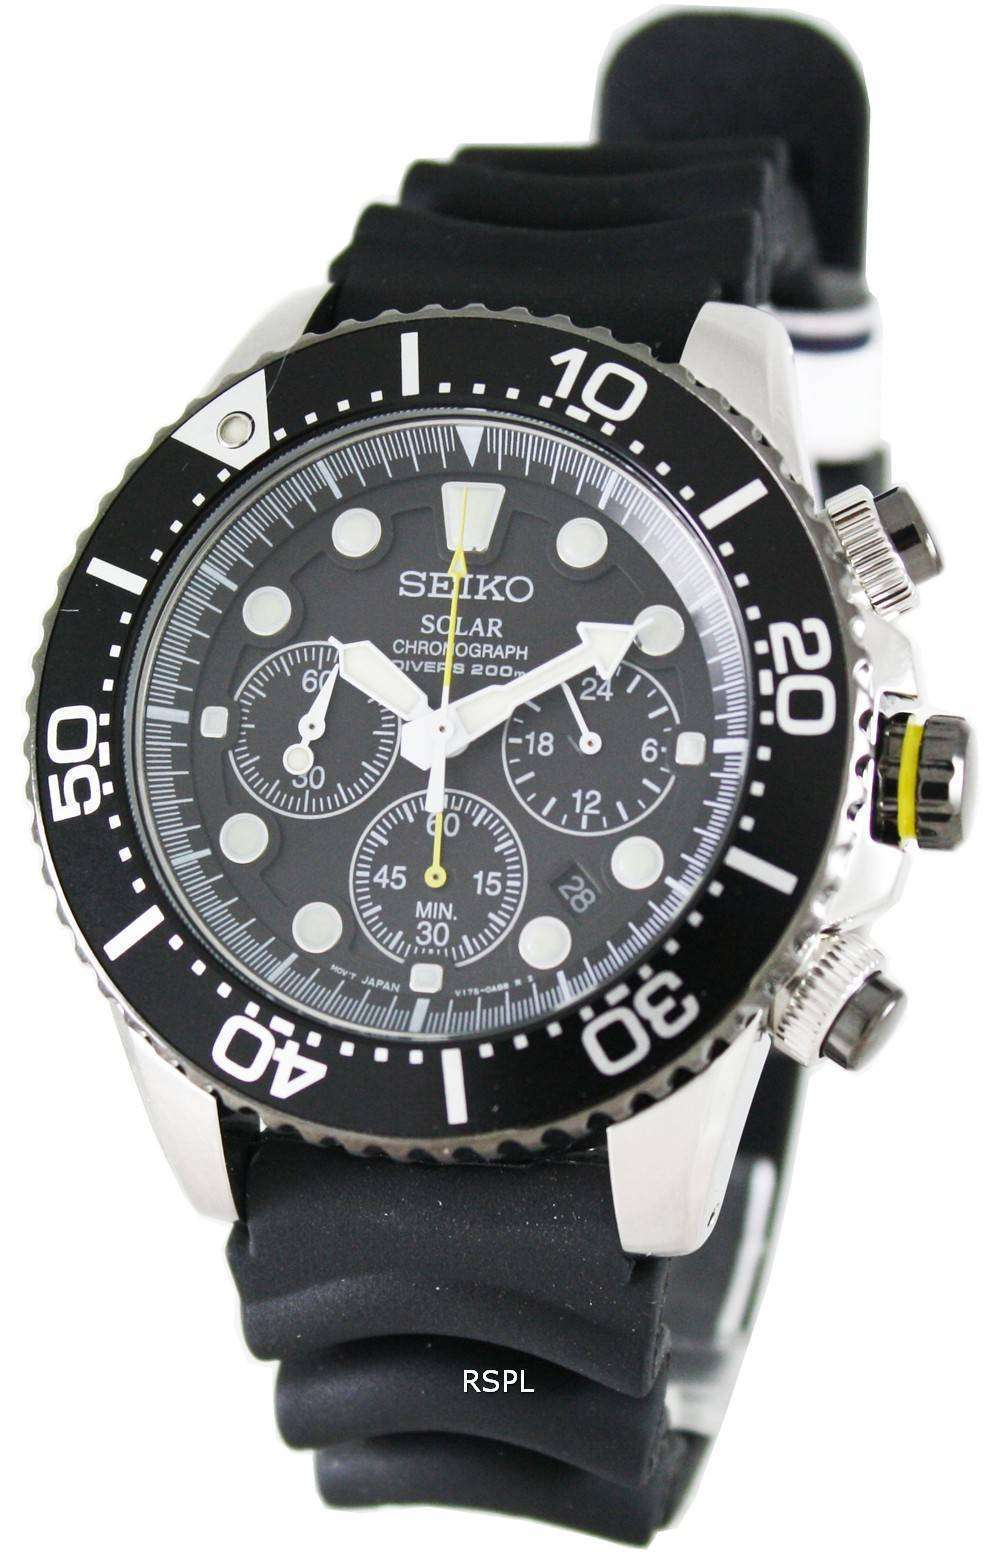 Seiko solar chronograph ssc021p1 mens watch zetawatches for Solar watches